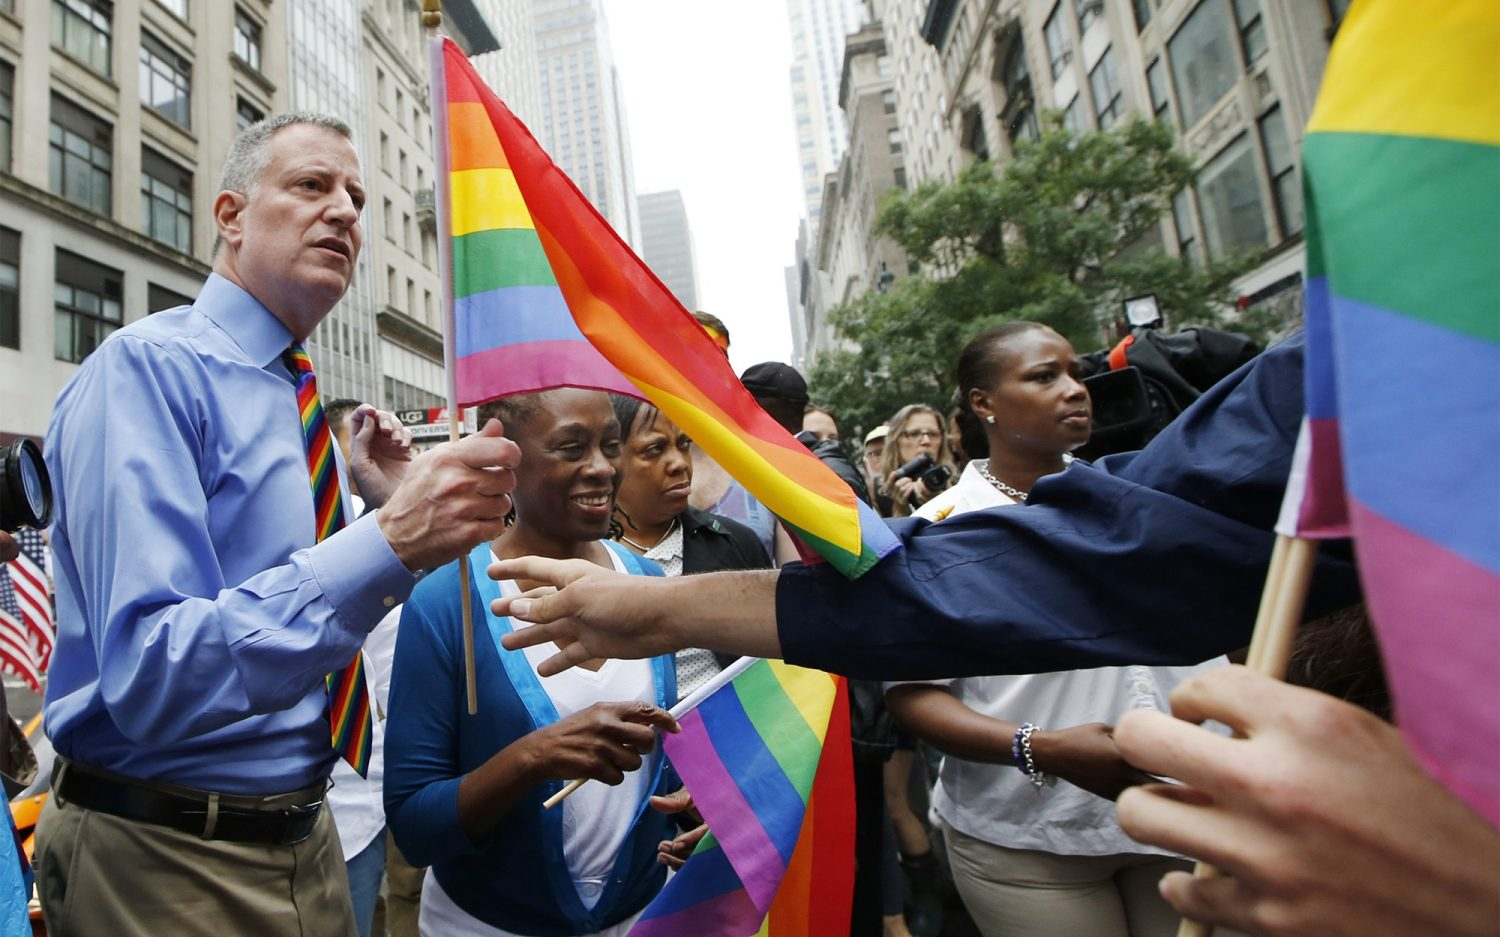 New York City votes to ban conversion therapy